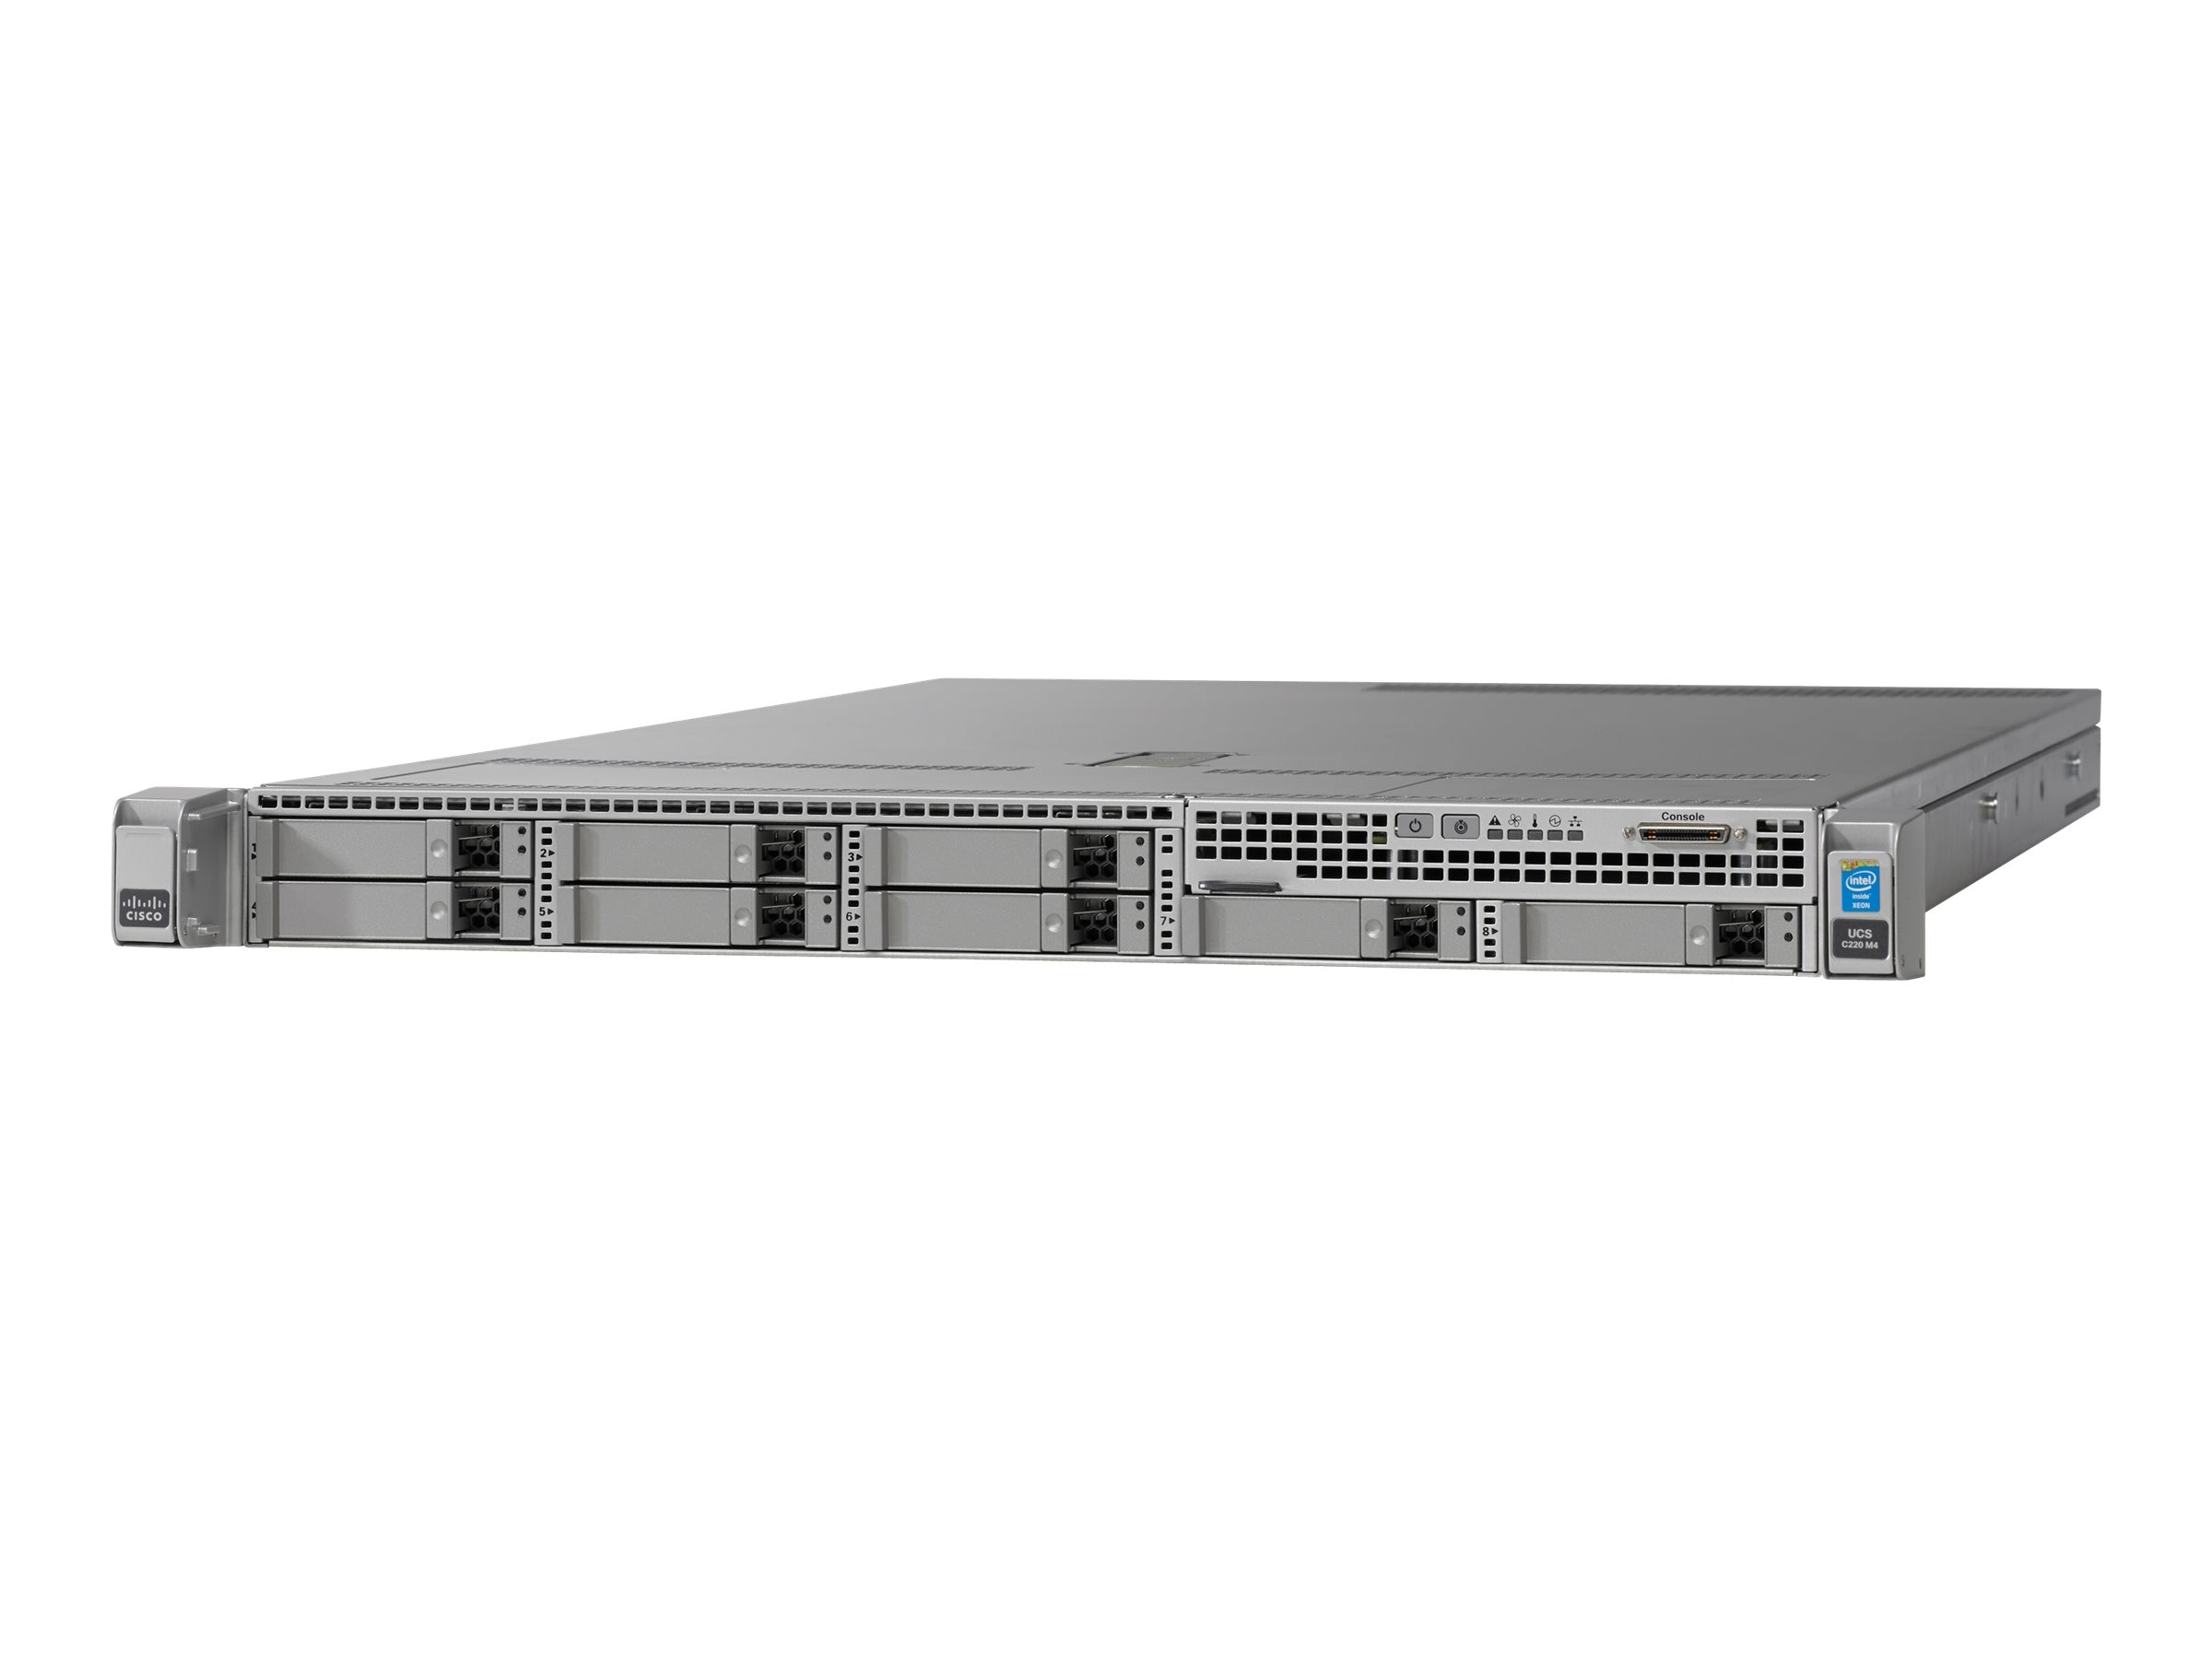 Cisco UCS C220 M4S (2x)Xeon E5-2680 v3 32GB 2x770W